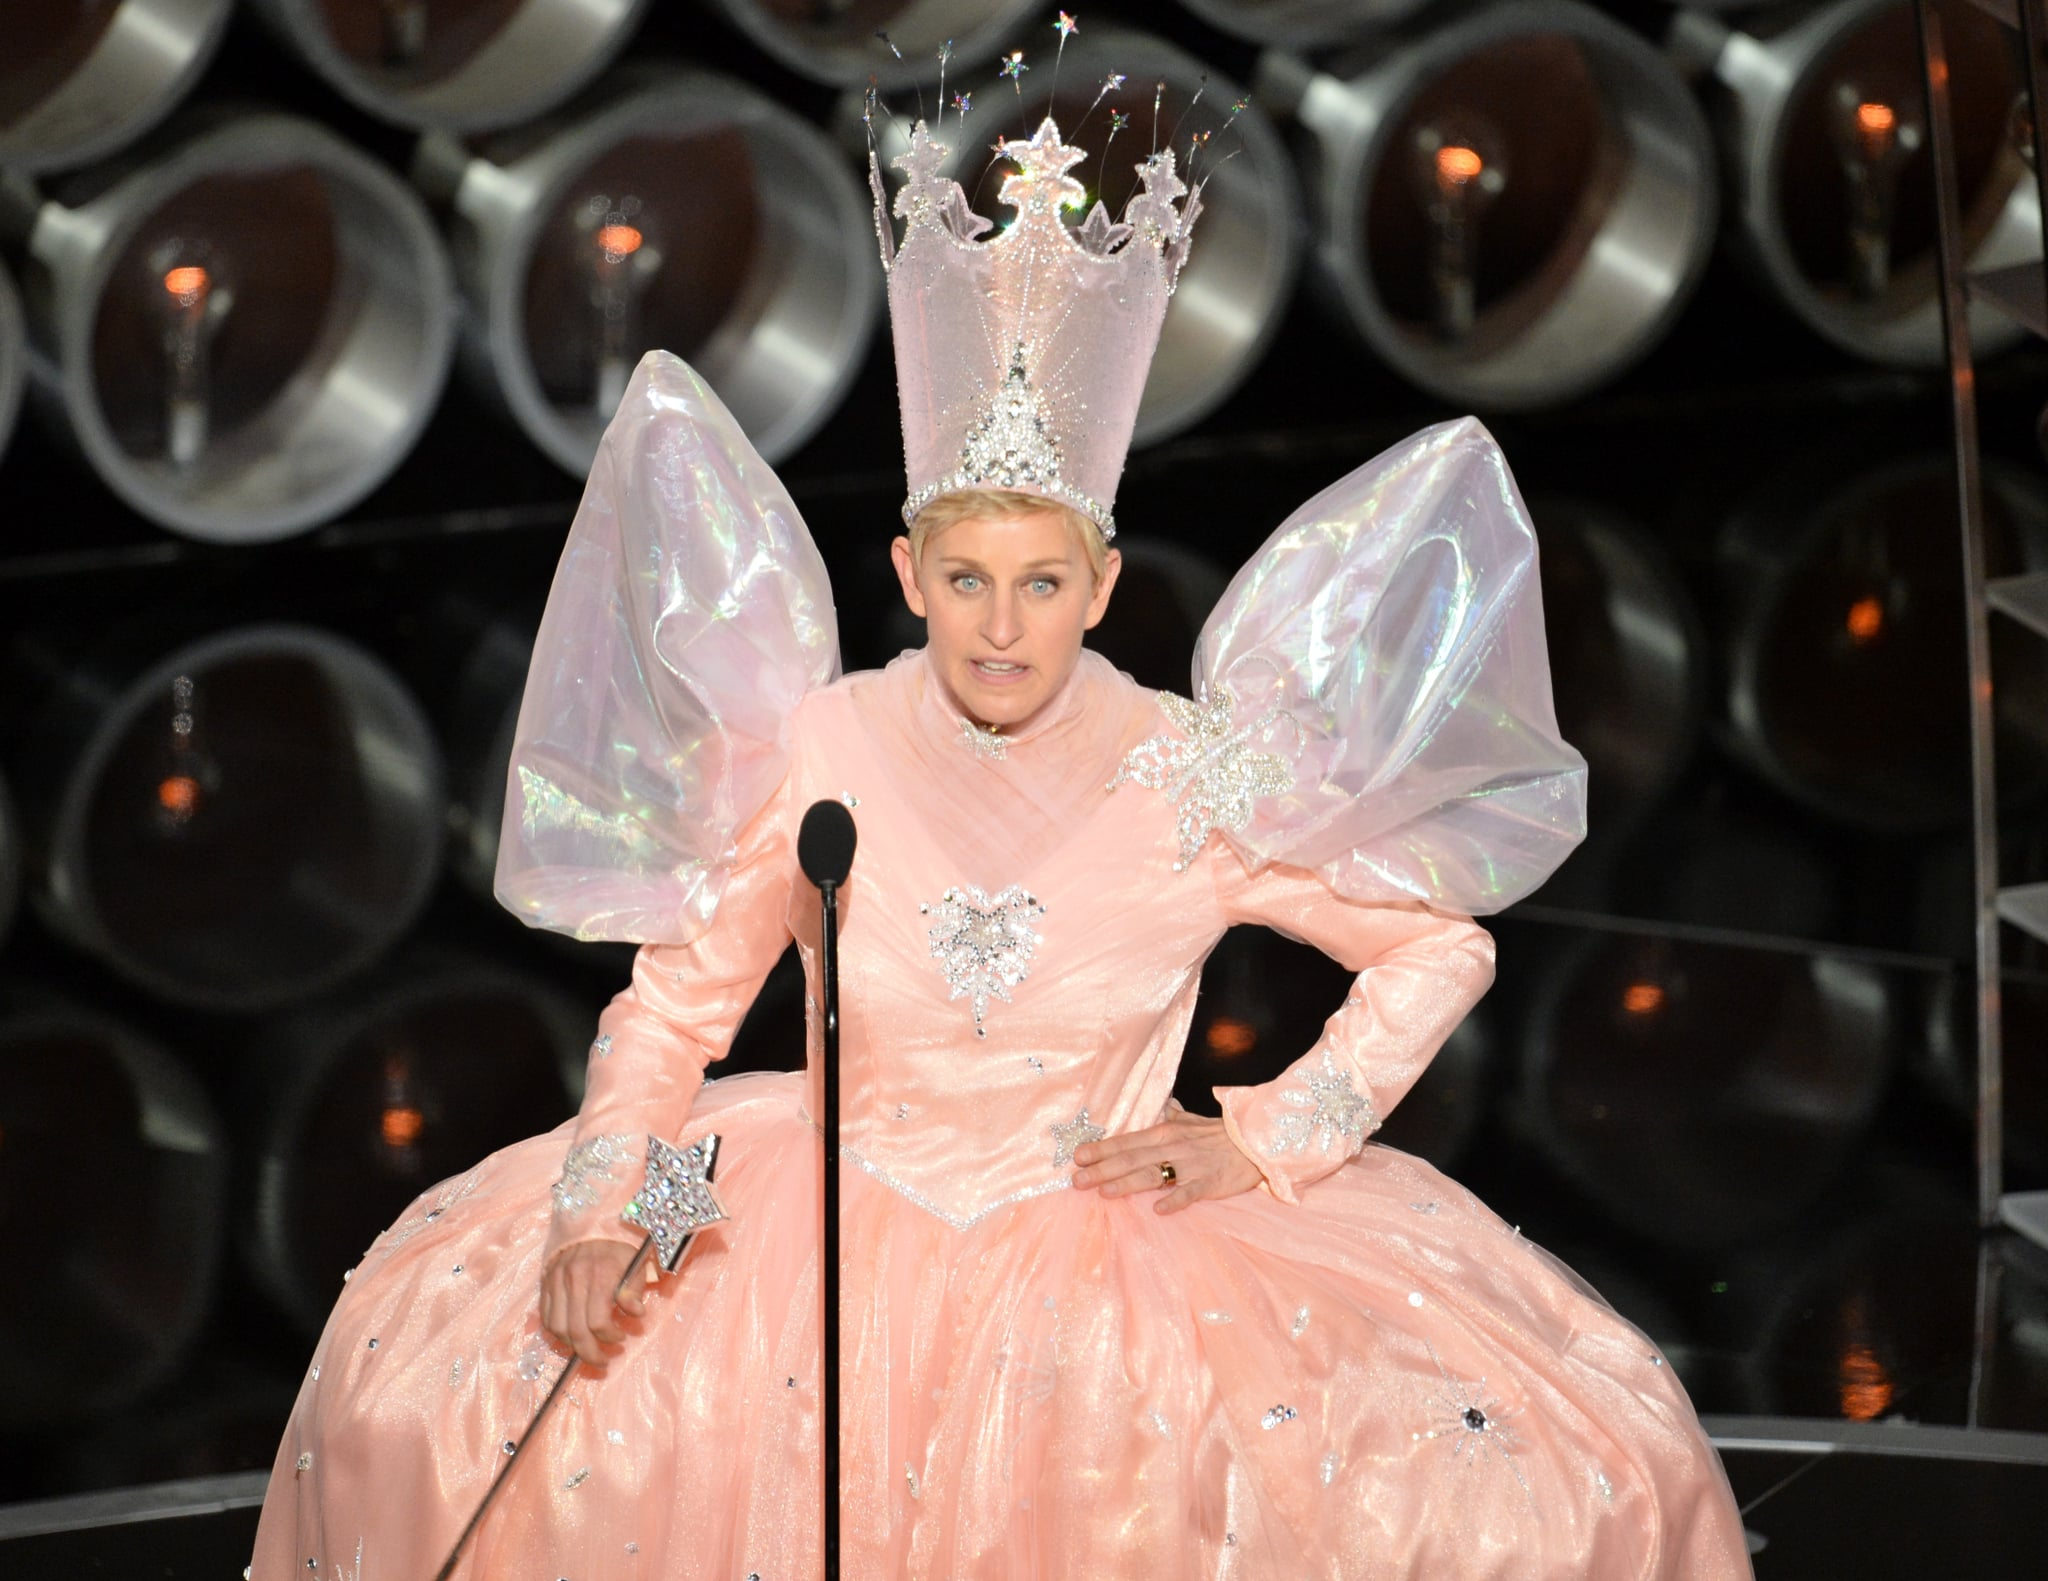 In one of her multiple outfit changes, host Ellen DeGeneres came out dressed as Glinda the Good Witch.